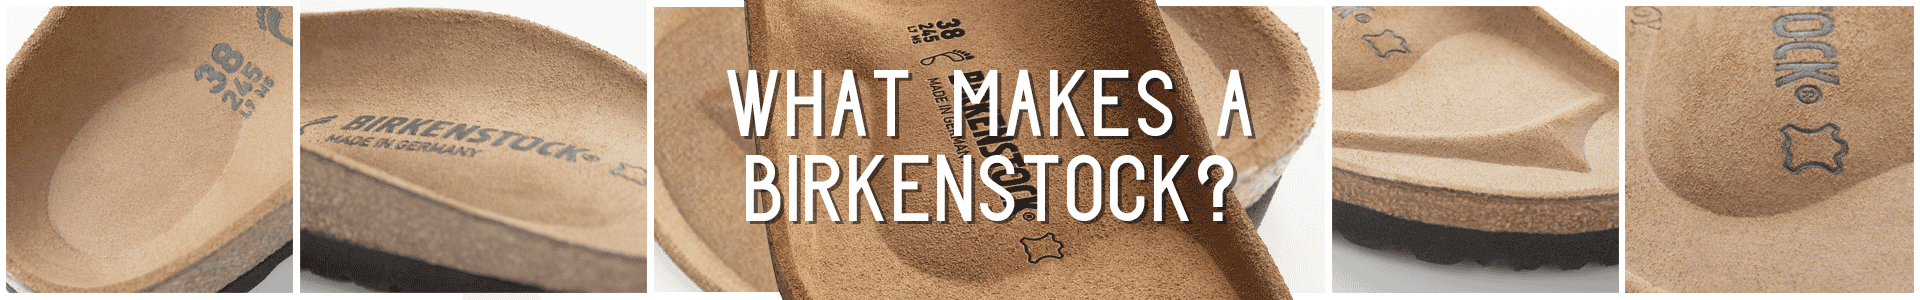 What Makes A Birkenstock Banner